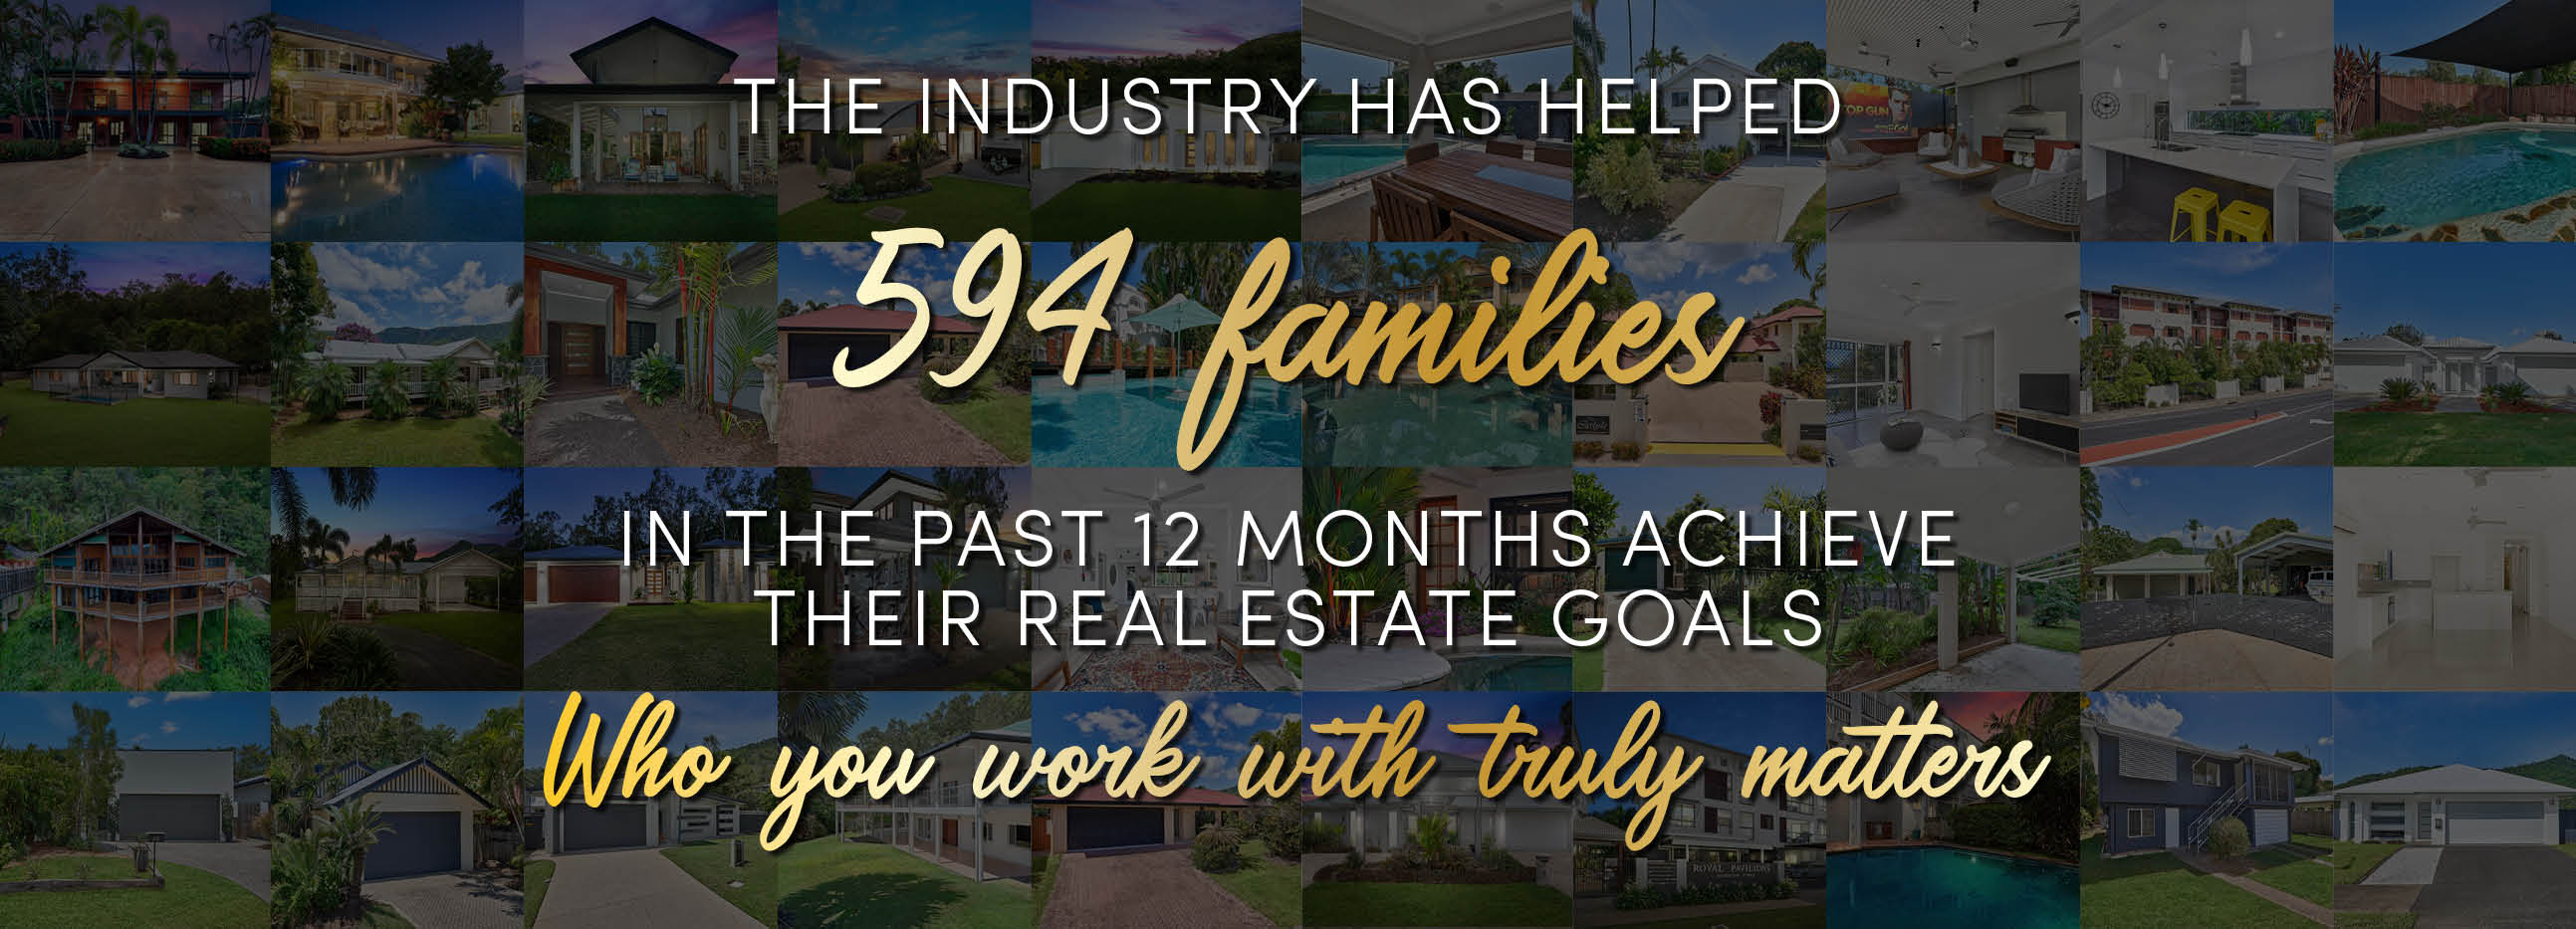 The Industry Estate Agents Cairns can help you achieve your real estate goals